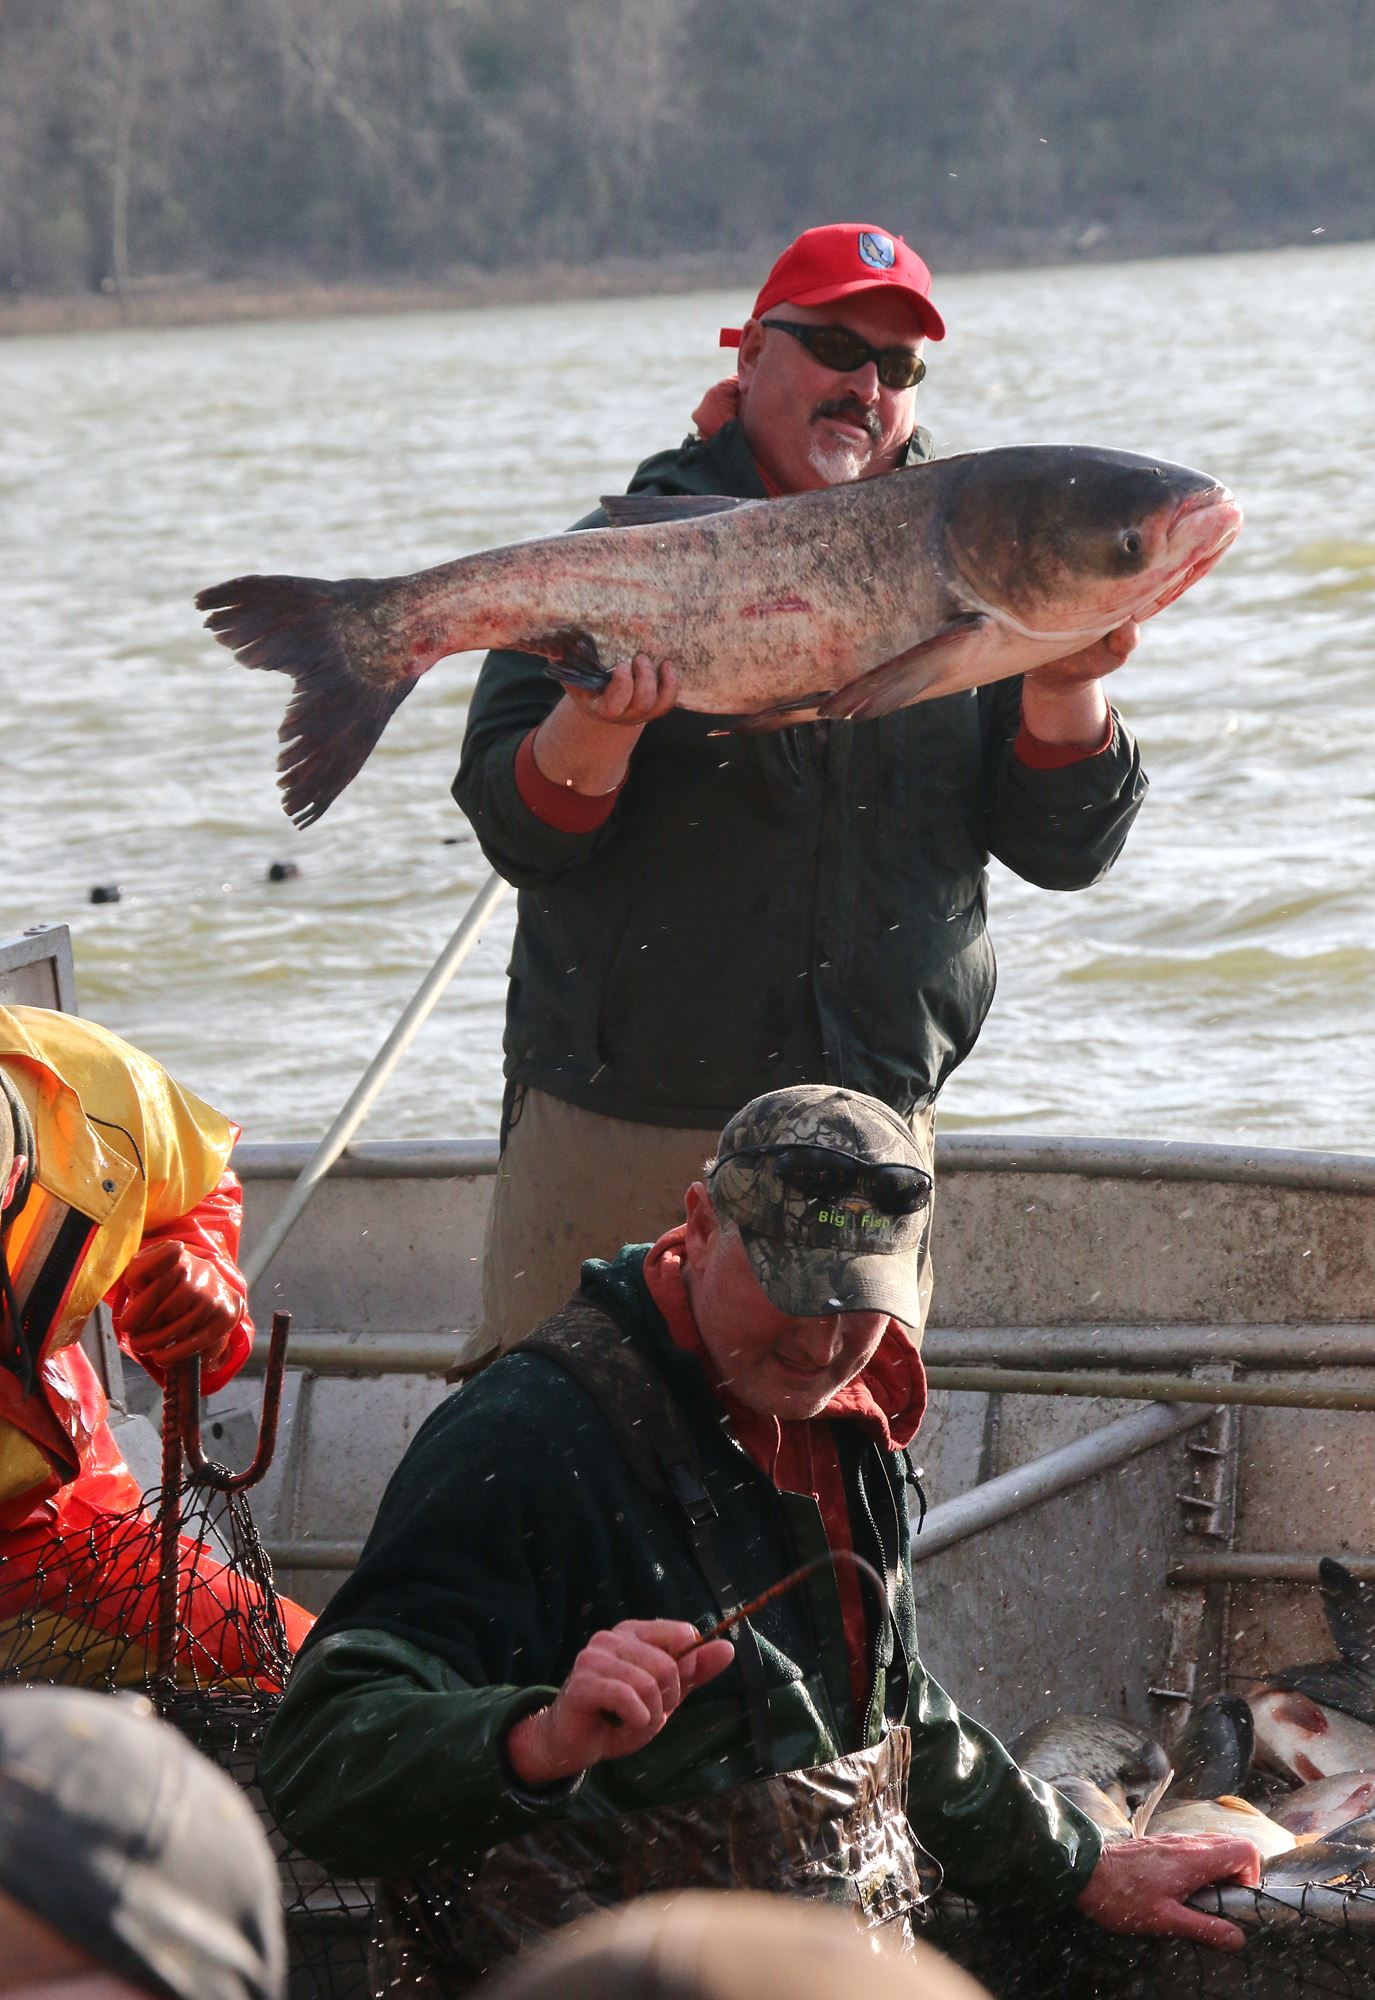 Ride the Asian carp nbc wins